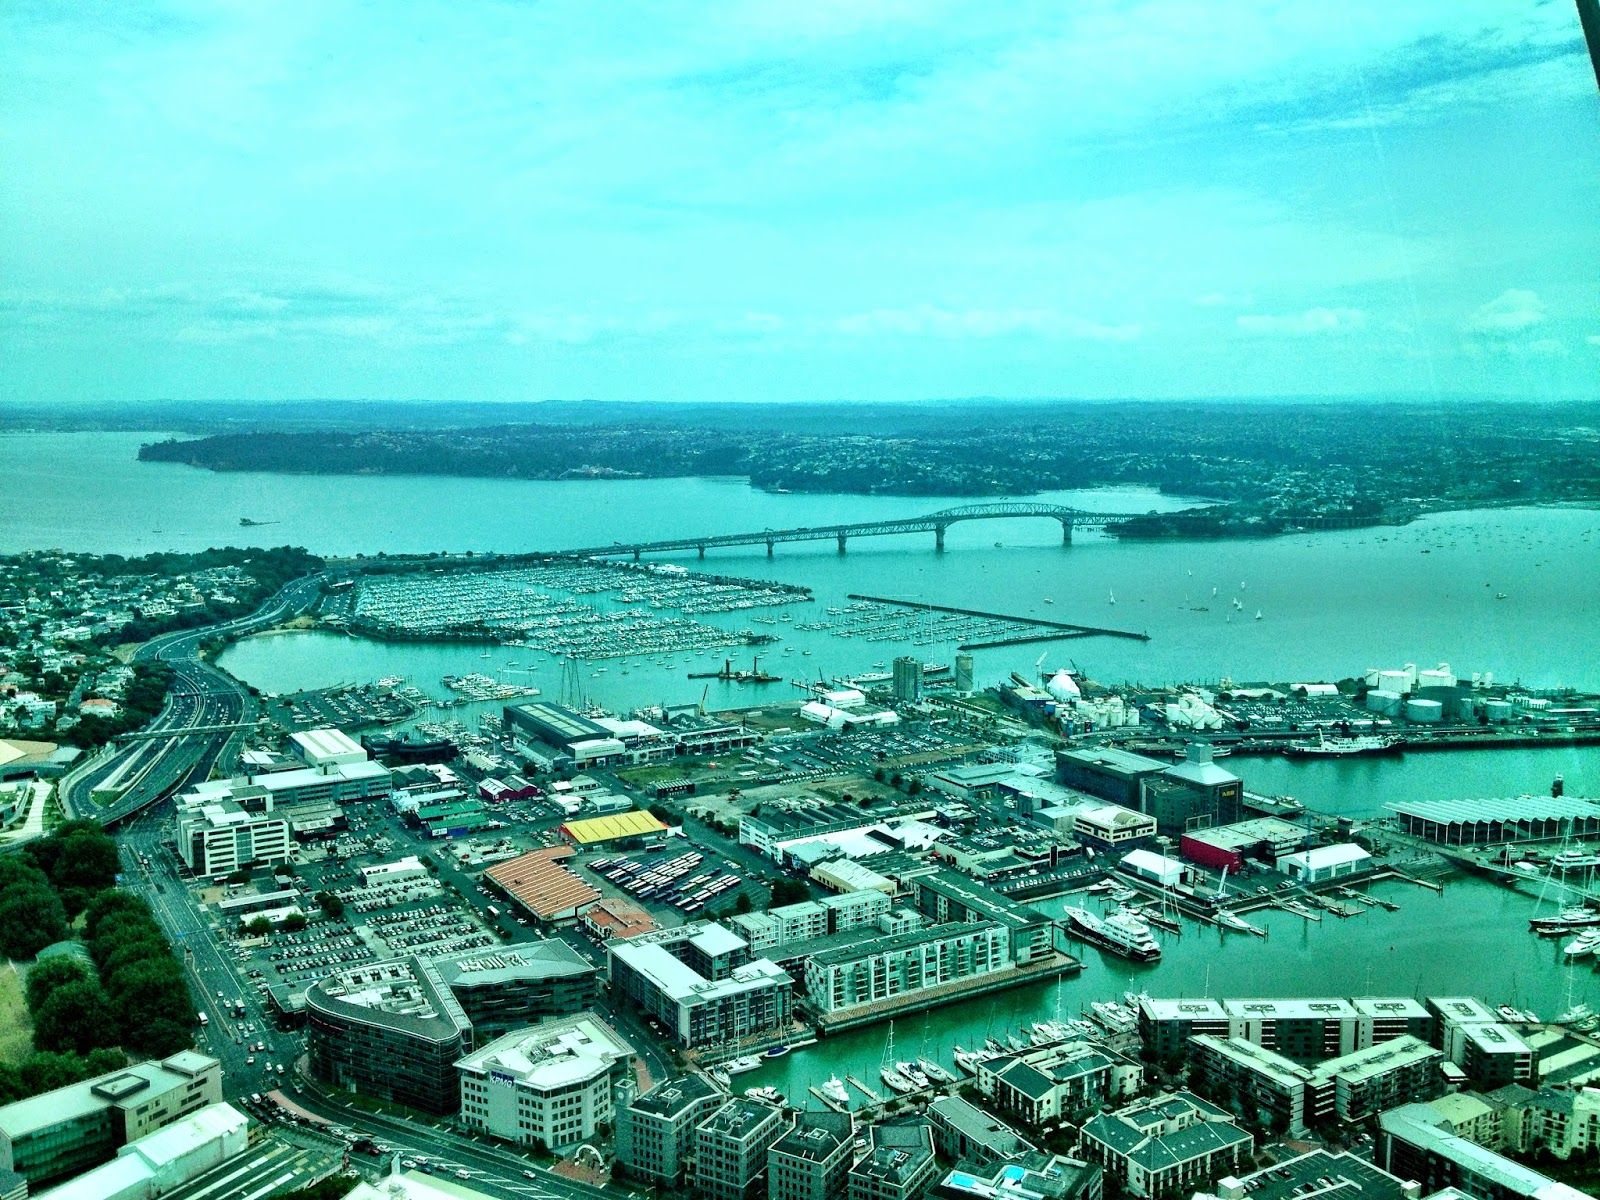 Looking North from the observation deck of the Sky Tower, Auckland